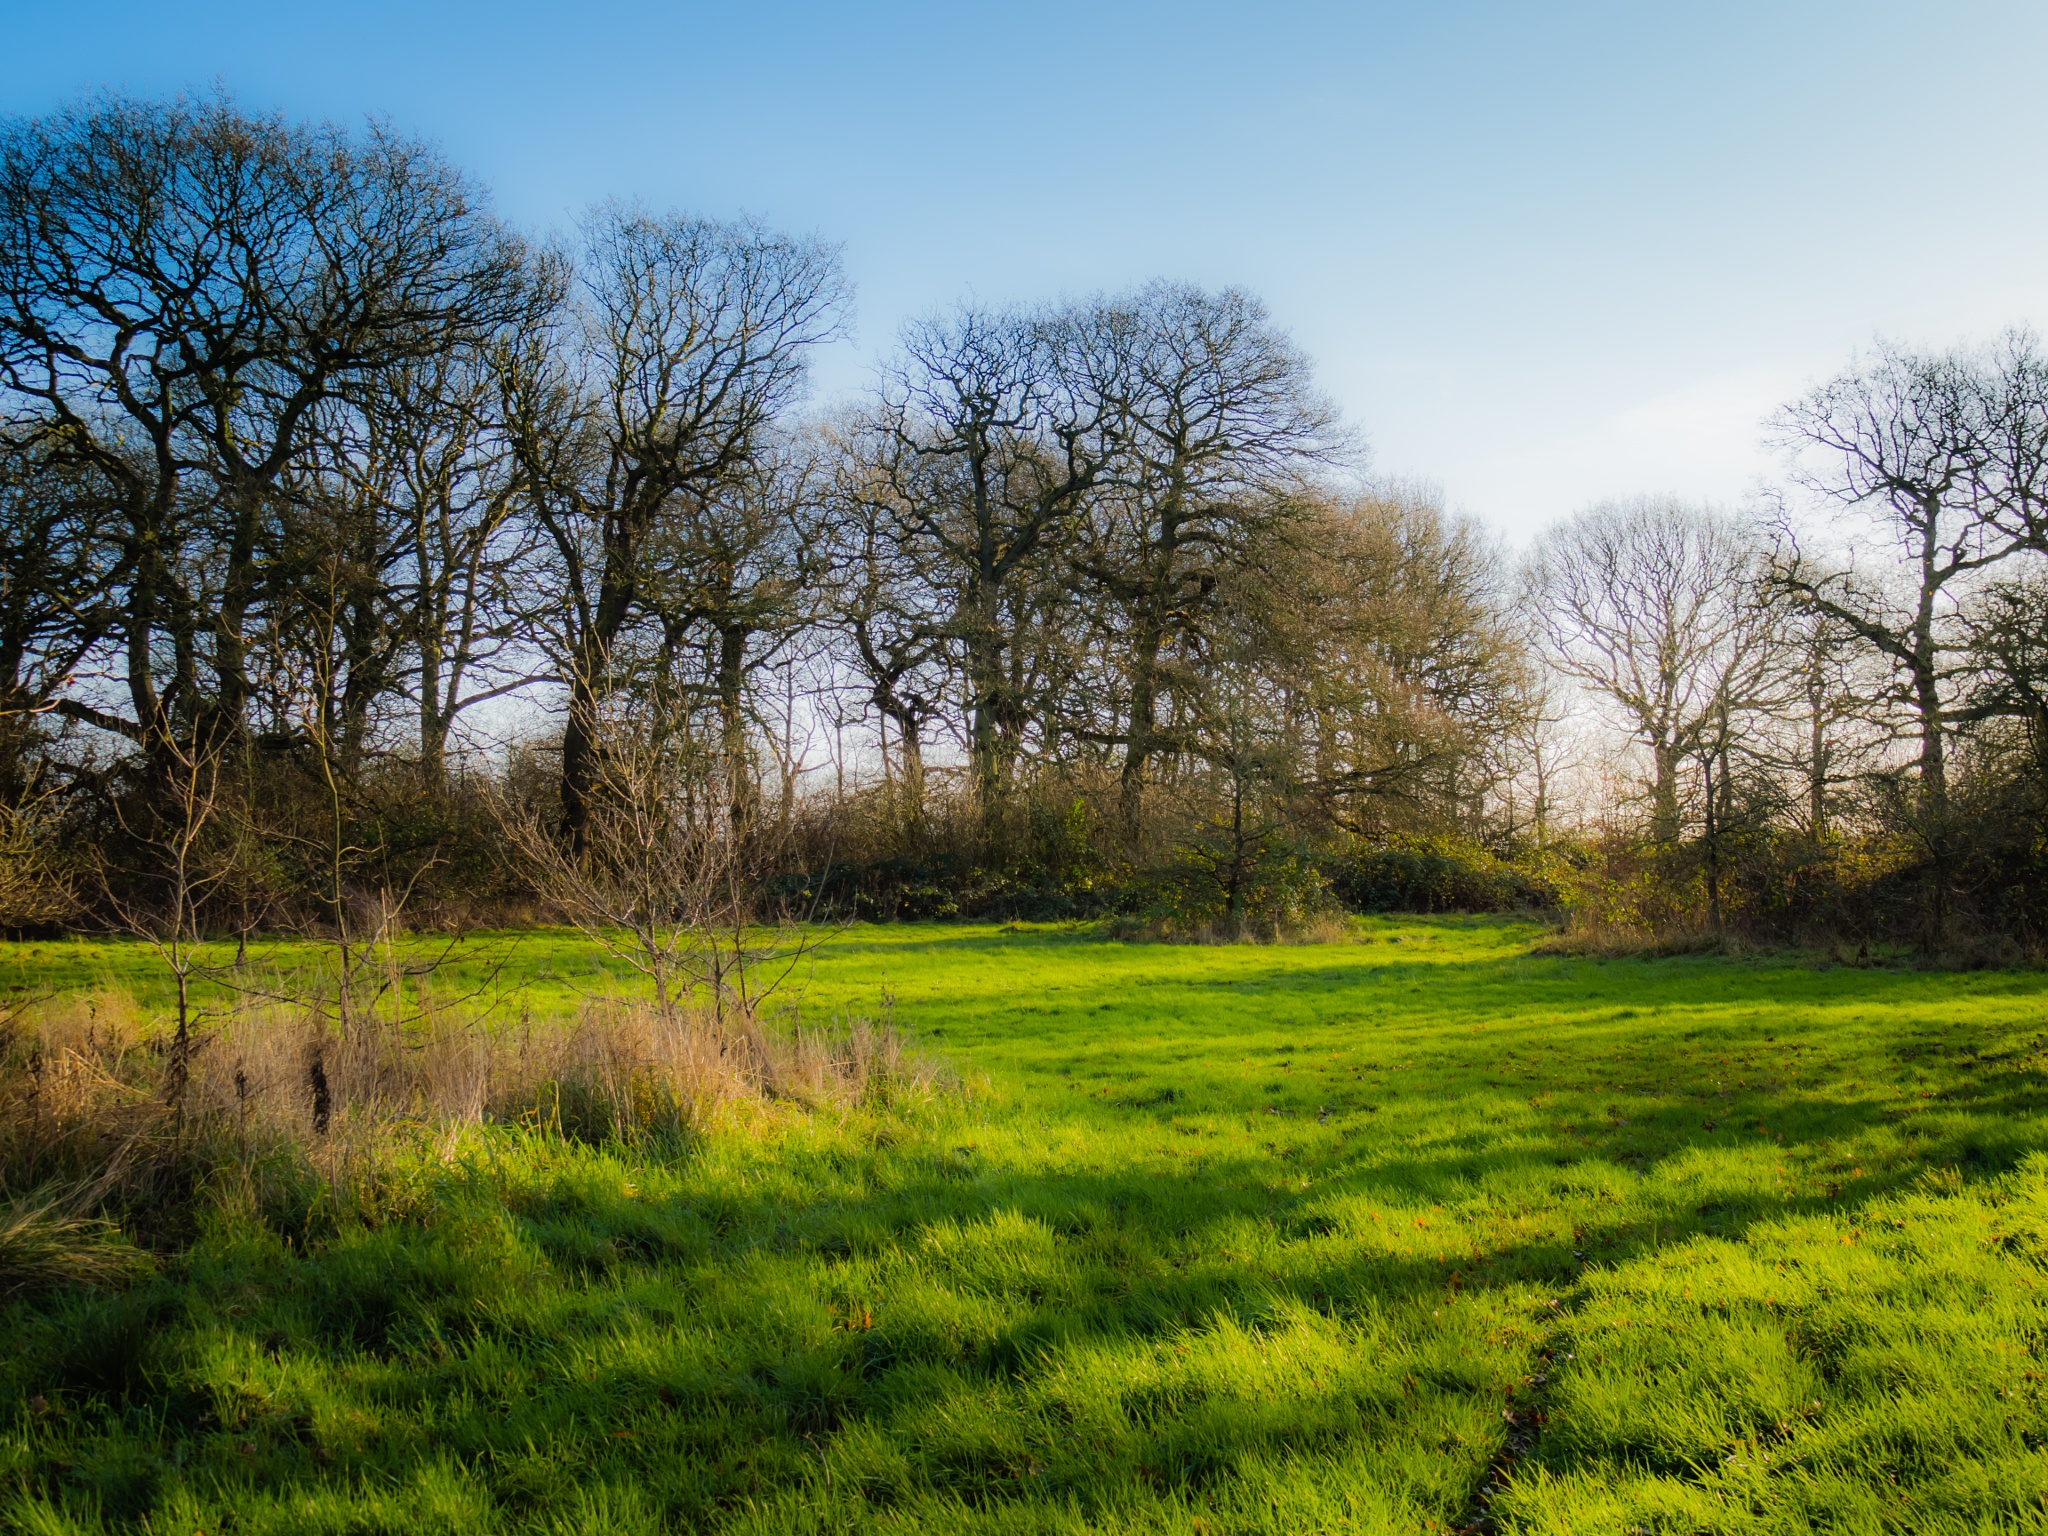 Winter Sun in our Clearing by Sarah Walters